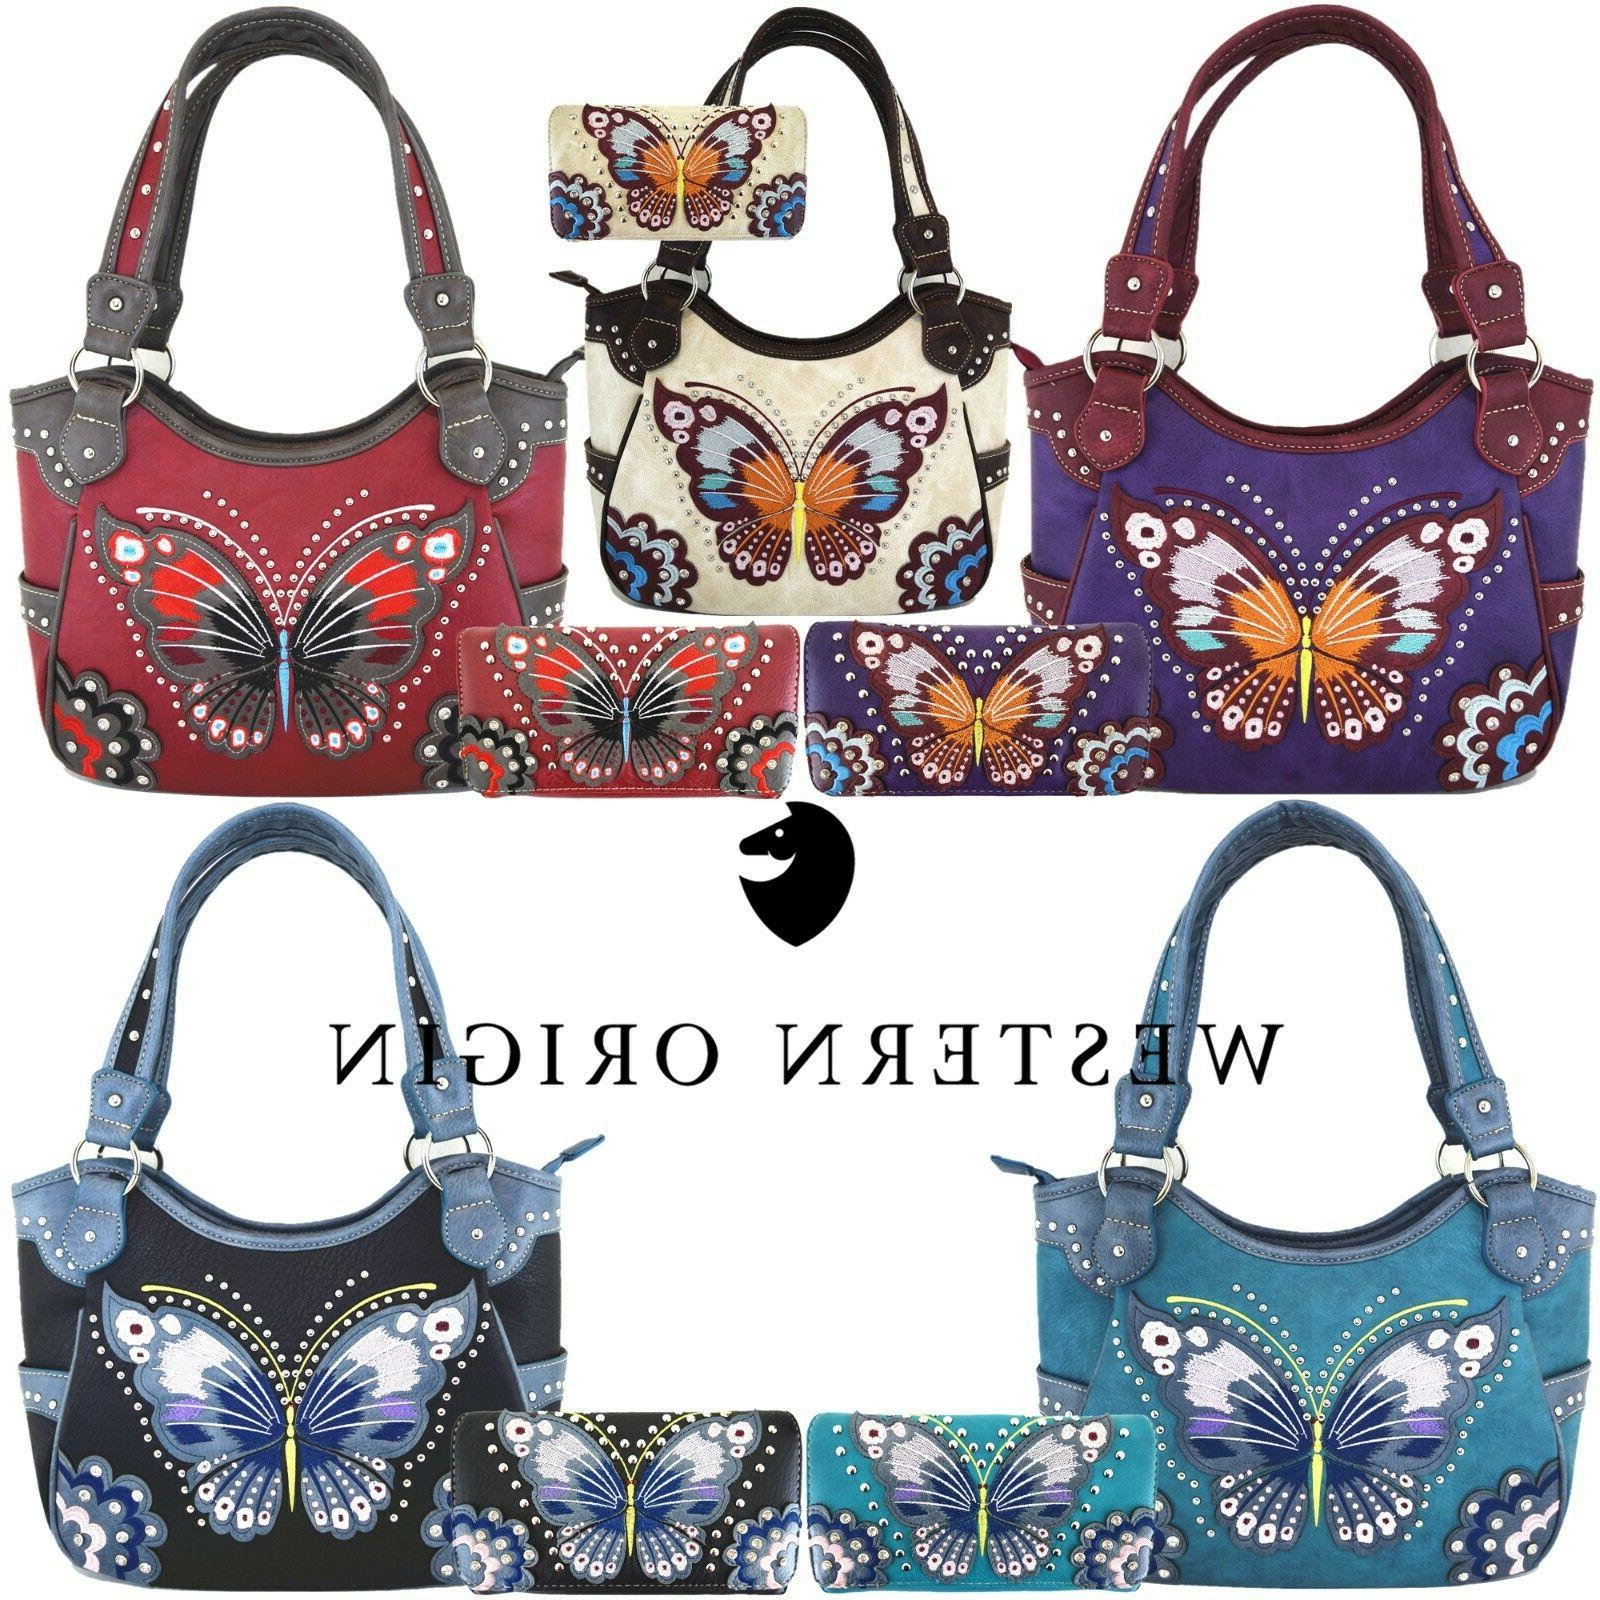 western style butterfly handbag concealed carry purse